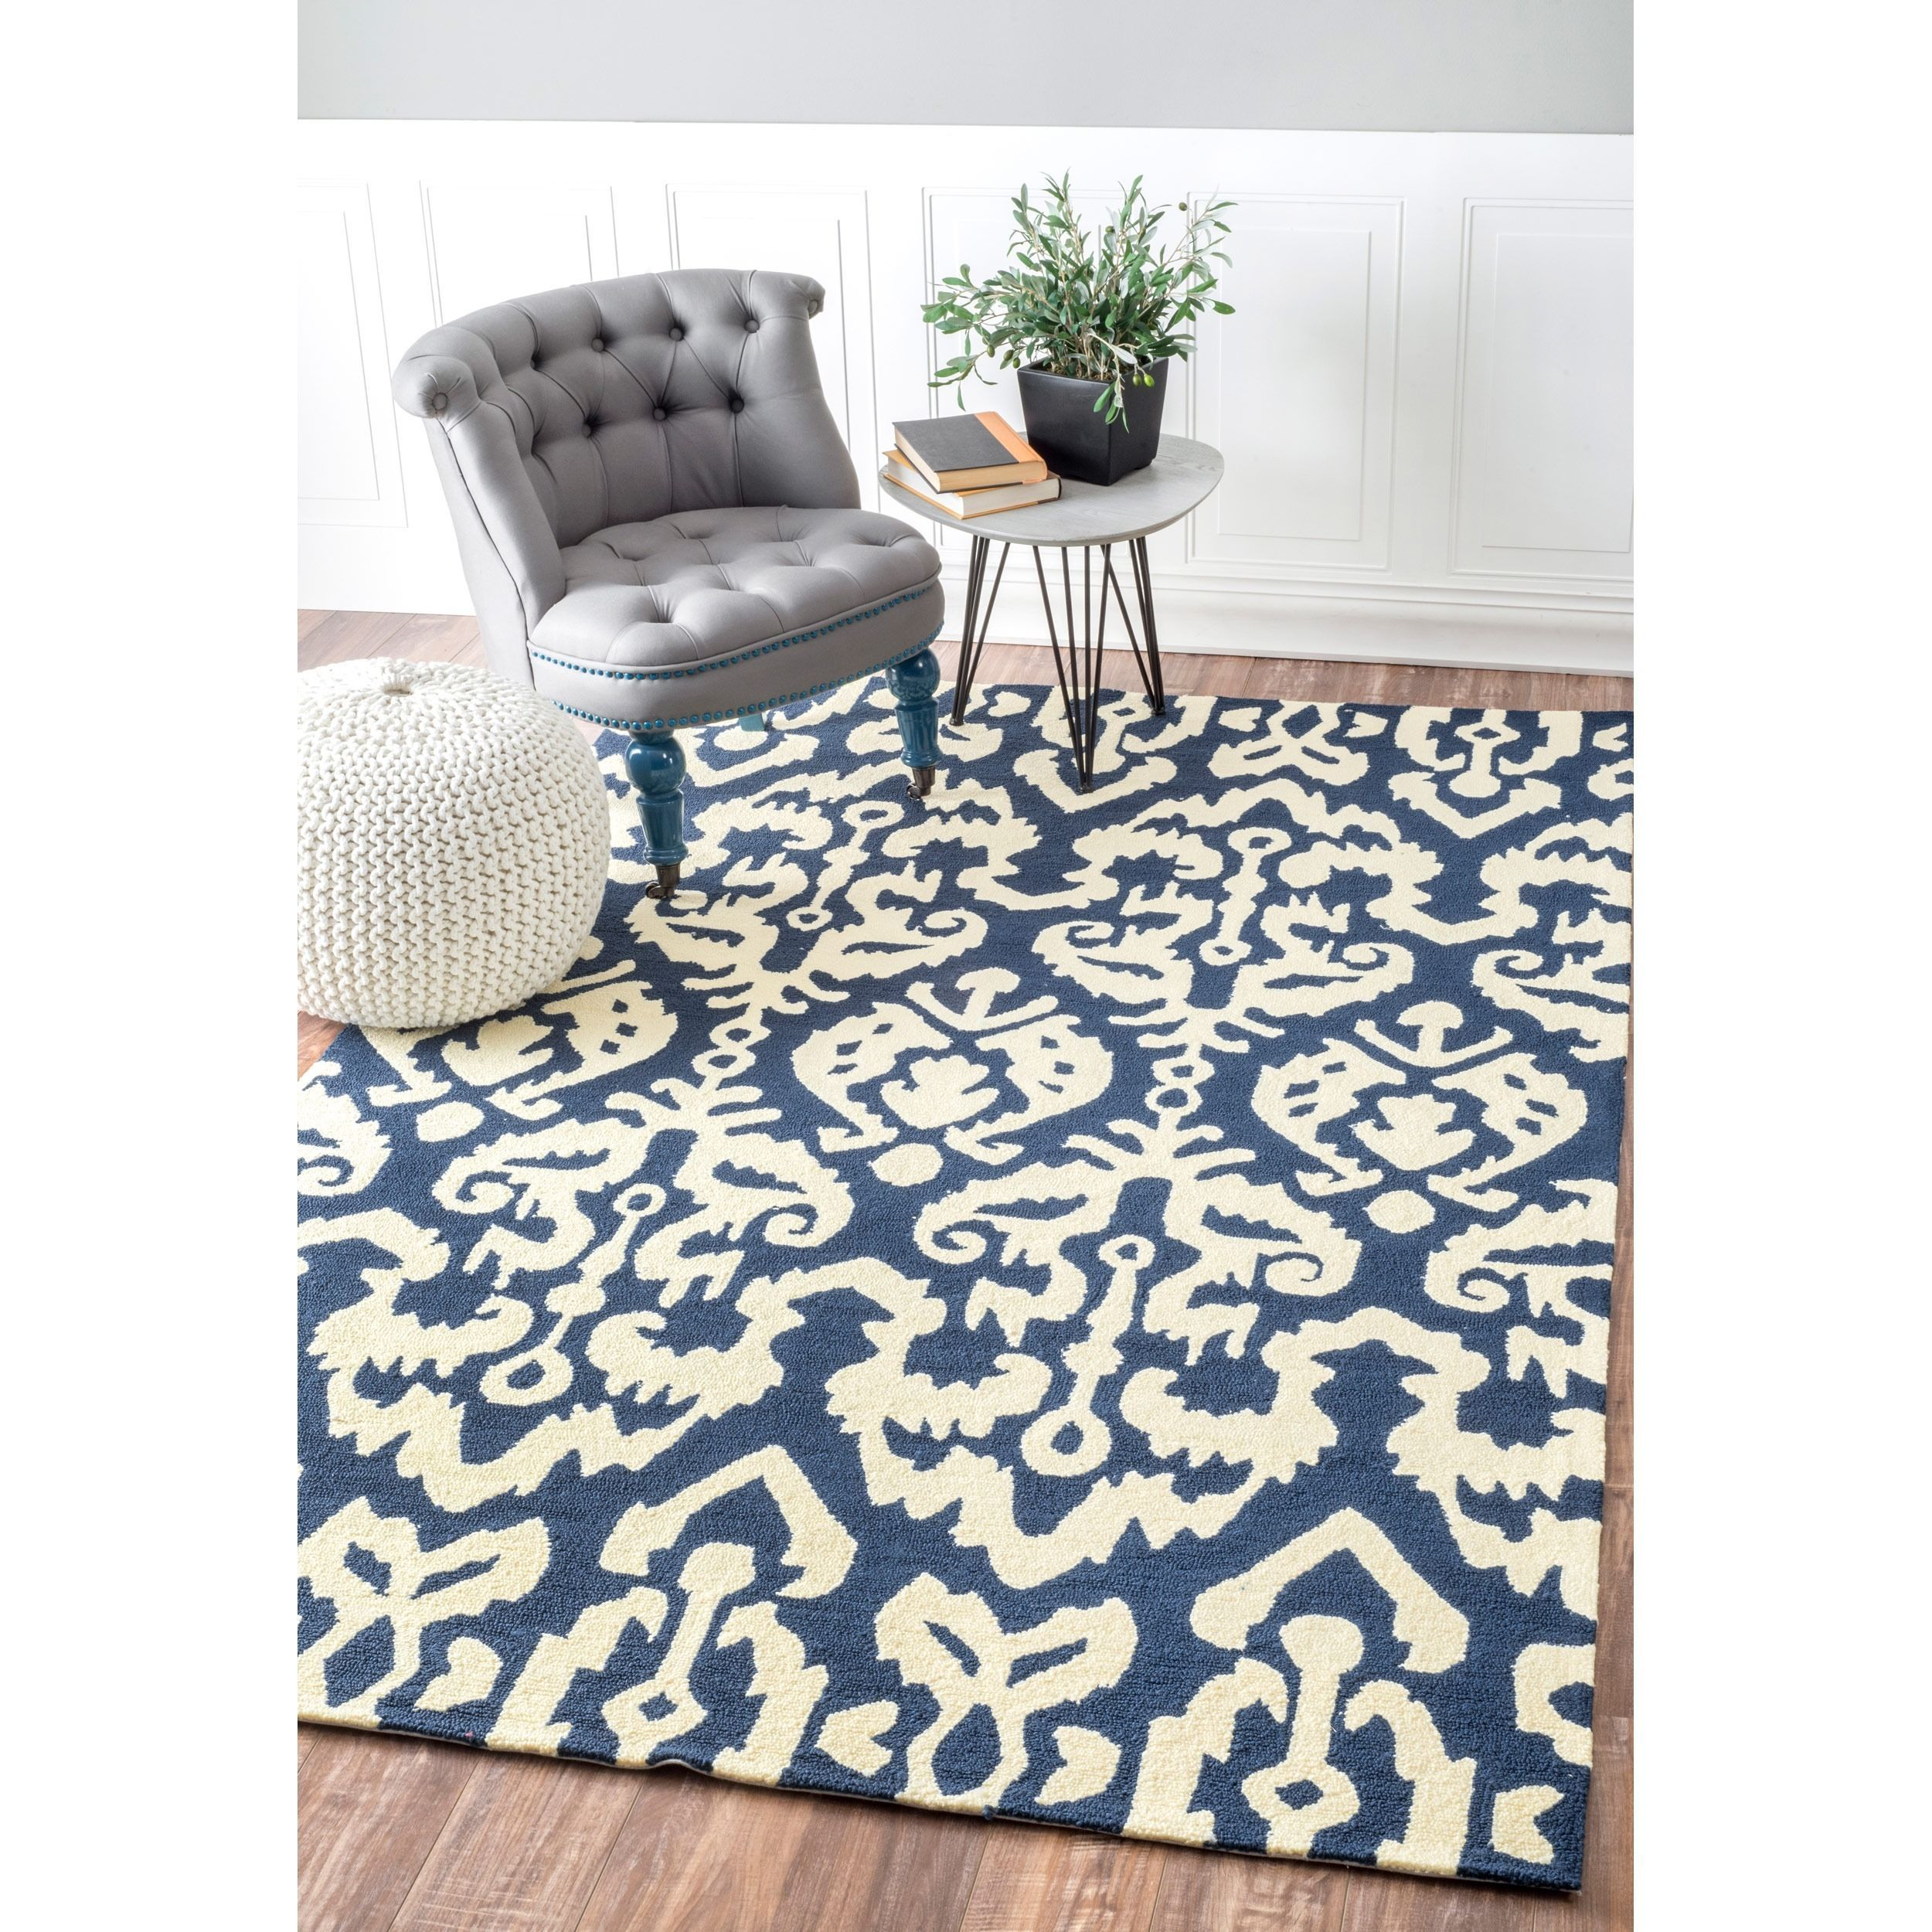 yellow carpet ideas skid non pad pads white nourison in area oriental target amazing backing rug and woven black stays affordable pink rugs fancy gripper zodicaworld